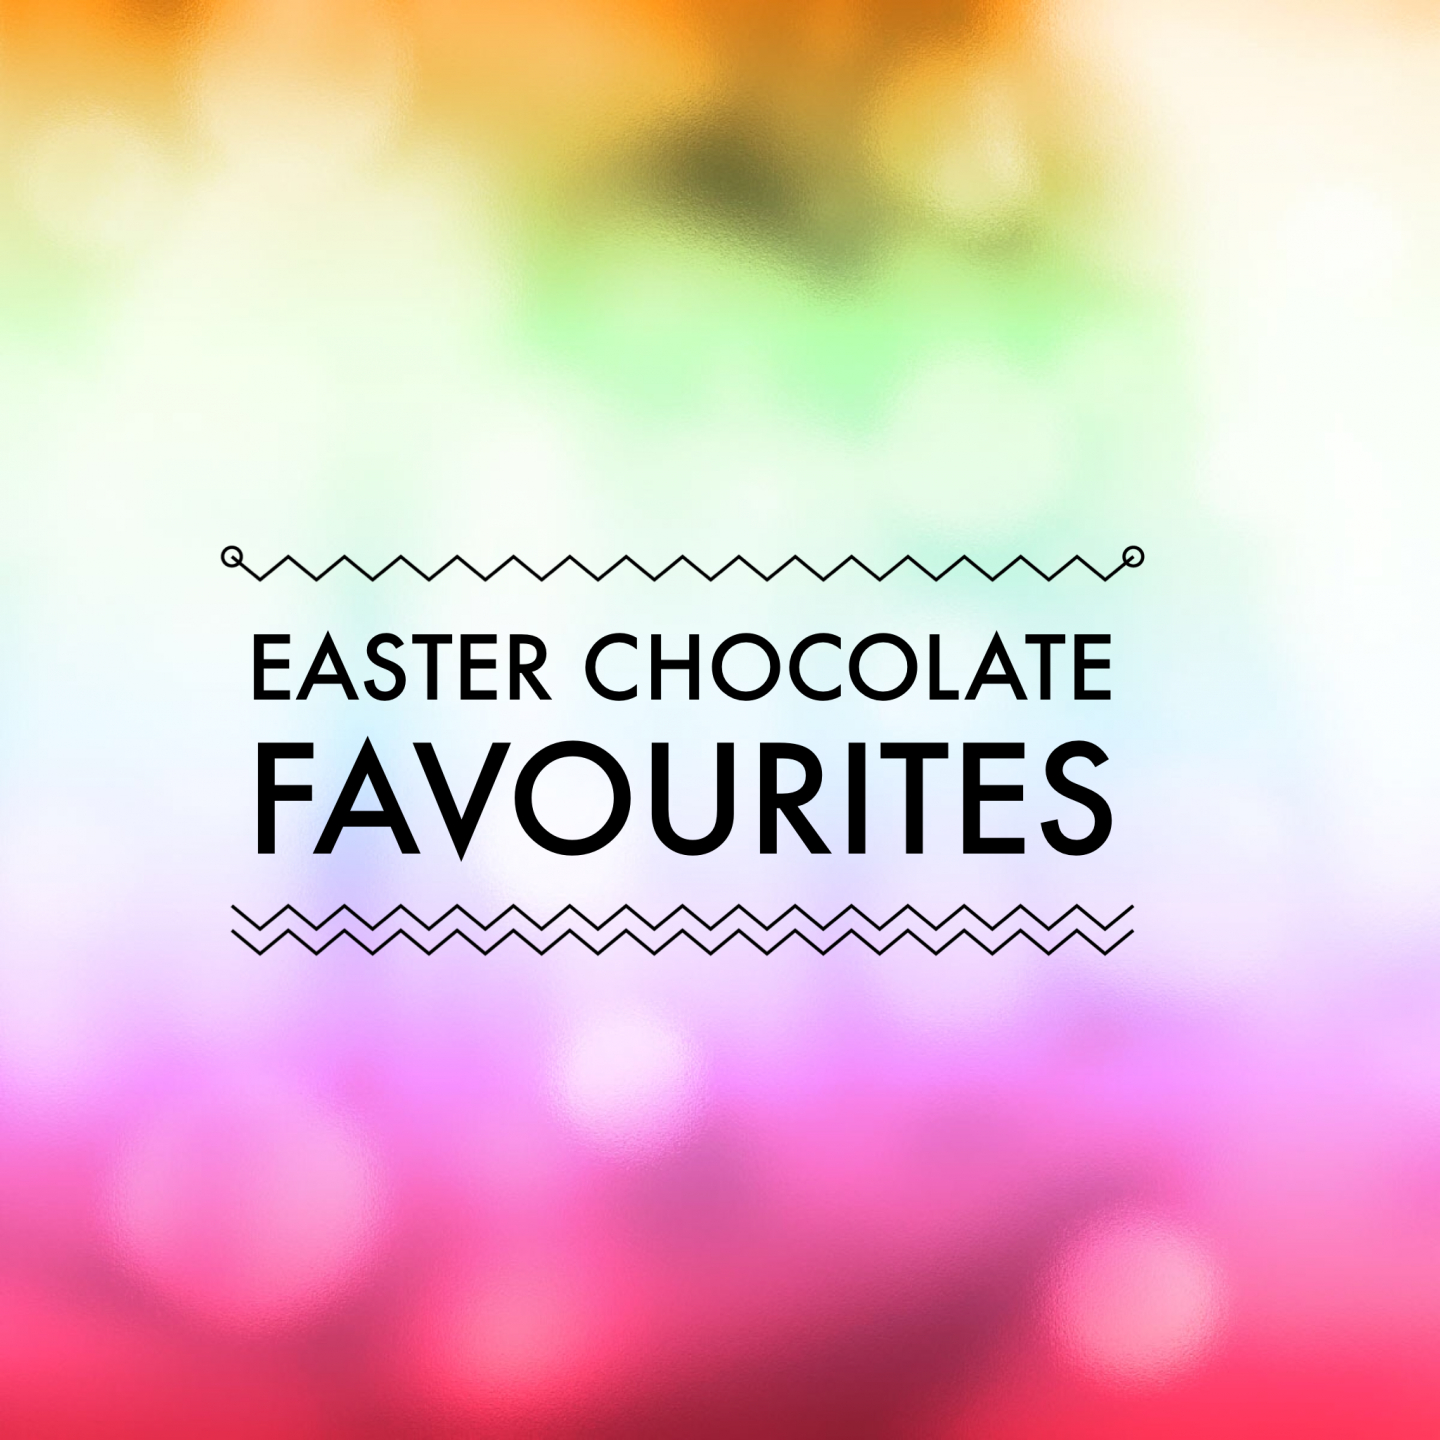 Easter Chocolate favourites